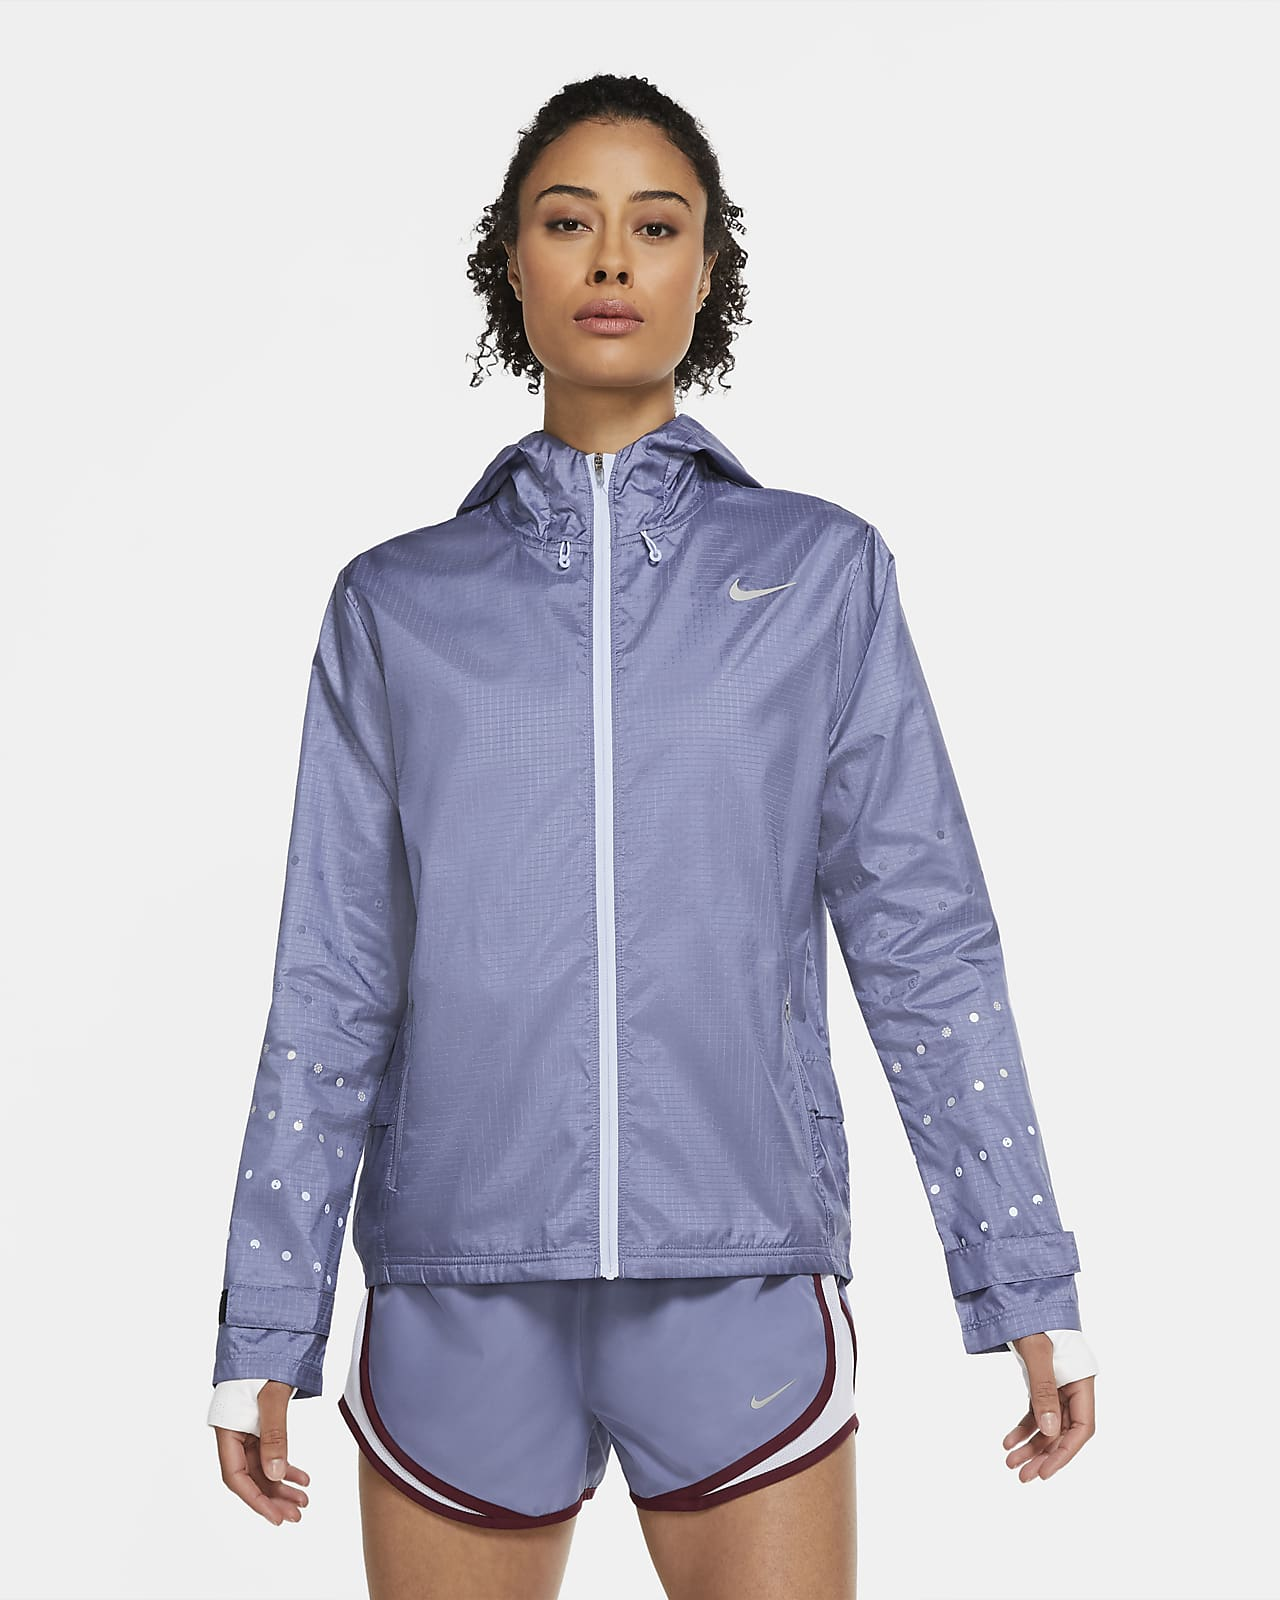 Nike Essential Flash Women's Hooded Running Jacket